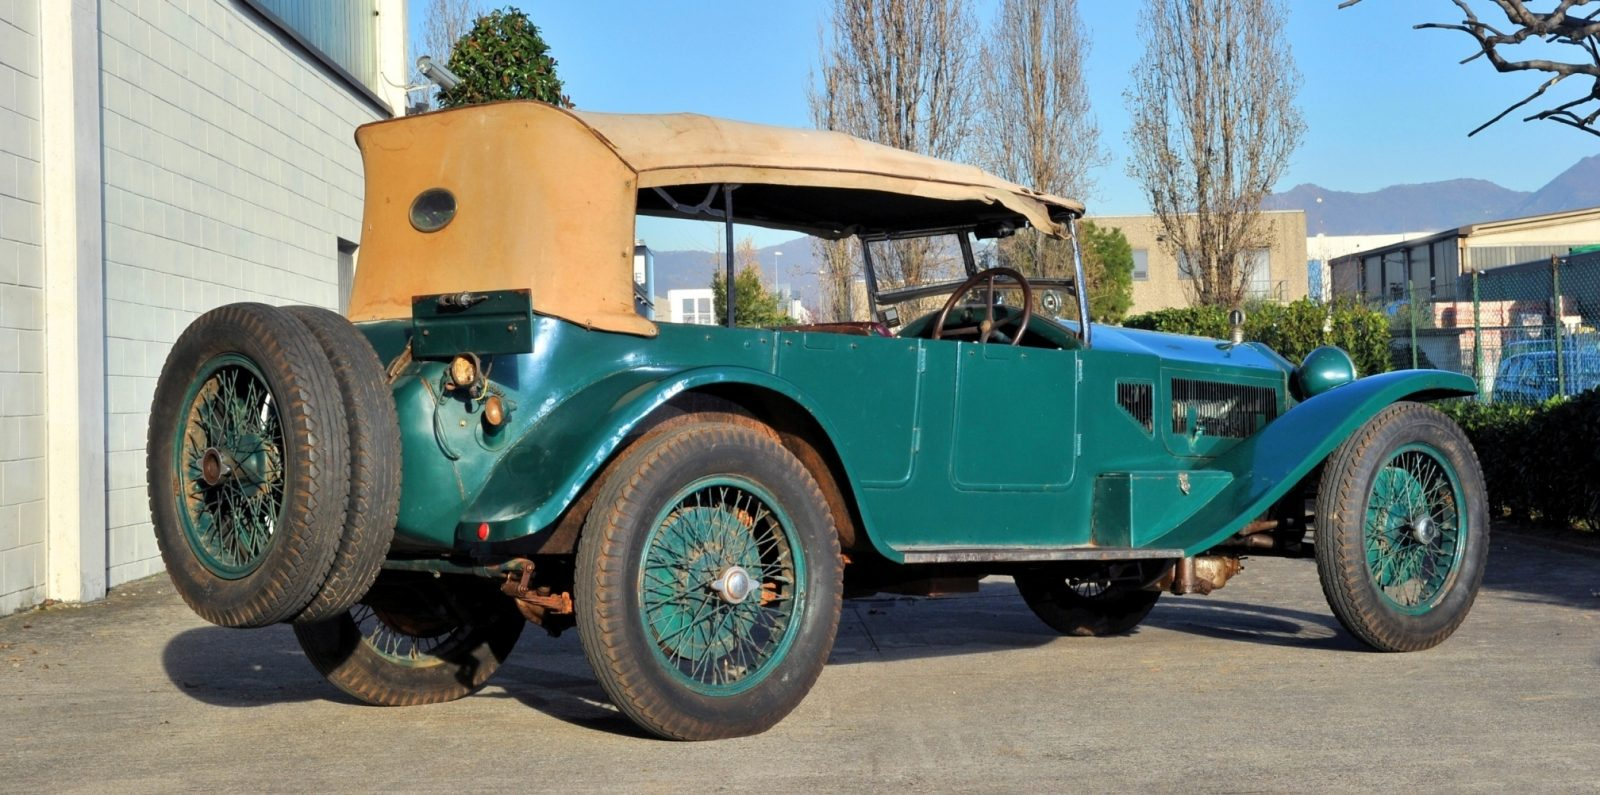 Wealth Dreams -- 1930 Lancia Lambda 8 Sports Tourer Seeks New Home -- My Home 2